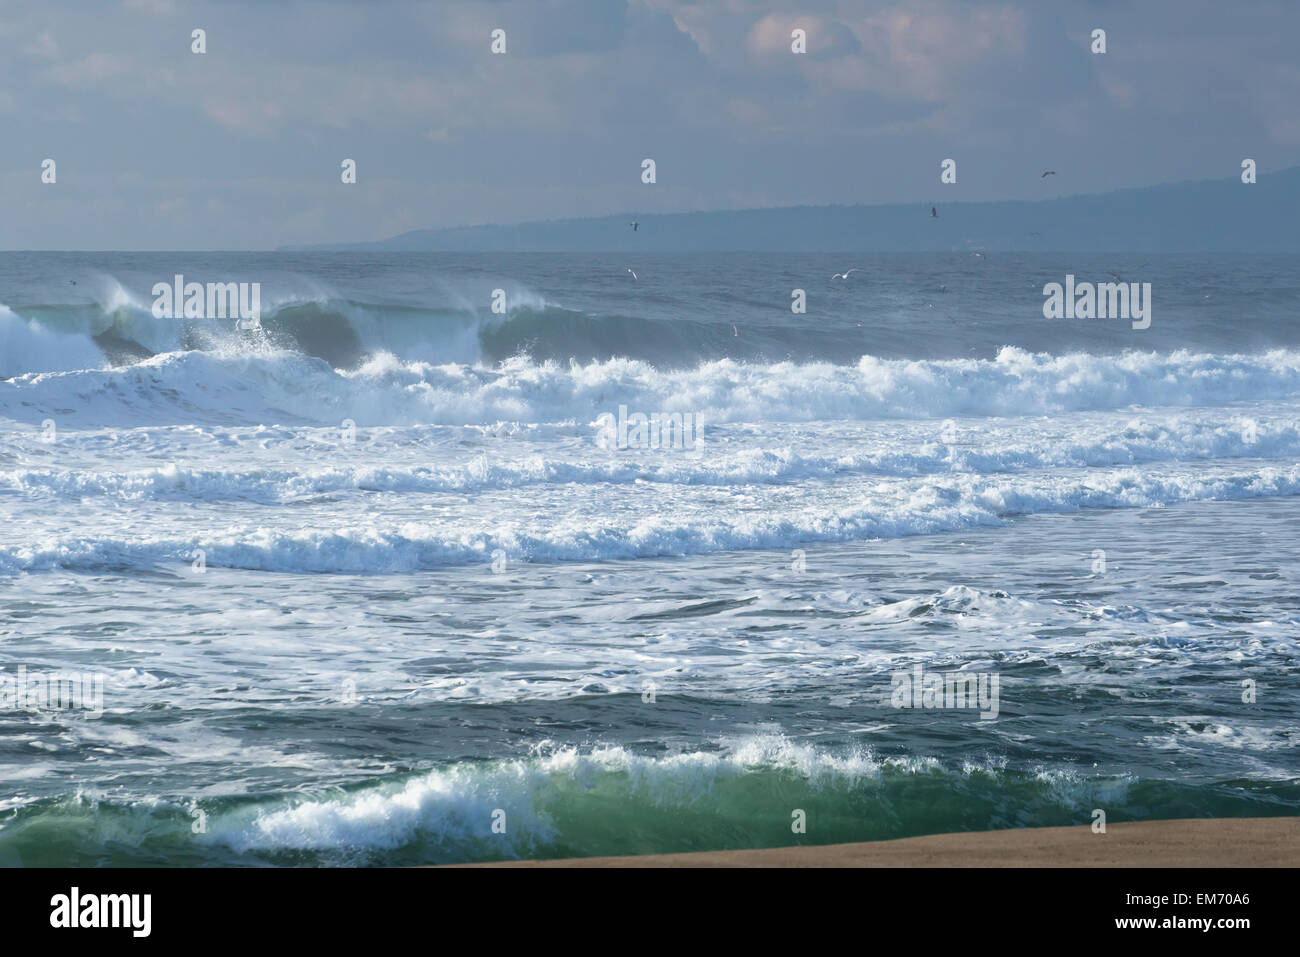 Breaking waves at Moss Landing State Beach, Moss Landing; Monterey Bay, California, United States of America Stock Photo